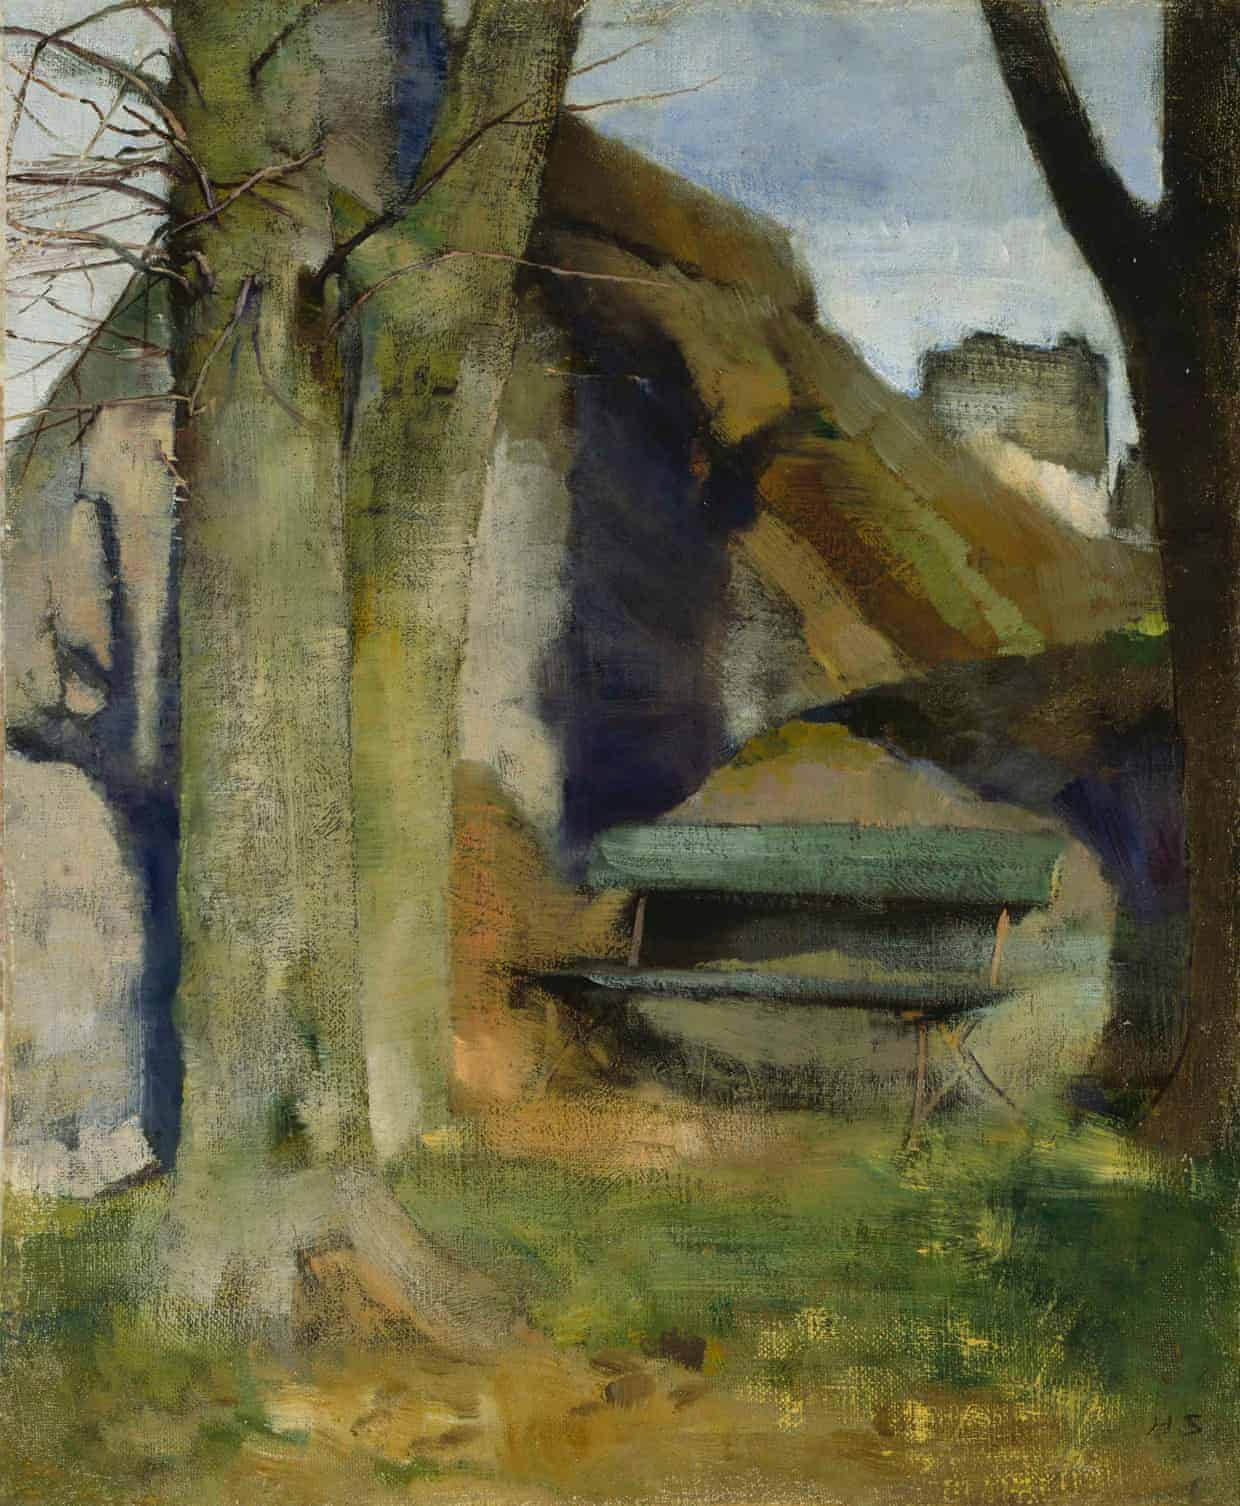 Helene Schjerfbeck, Shadow on the Wall (Breton Landscape), 1883. Photograph: Niemistö Collection; photo: Finnish National Gallery